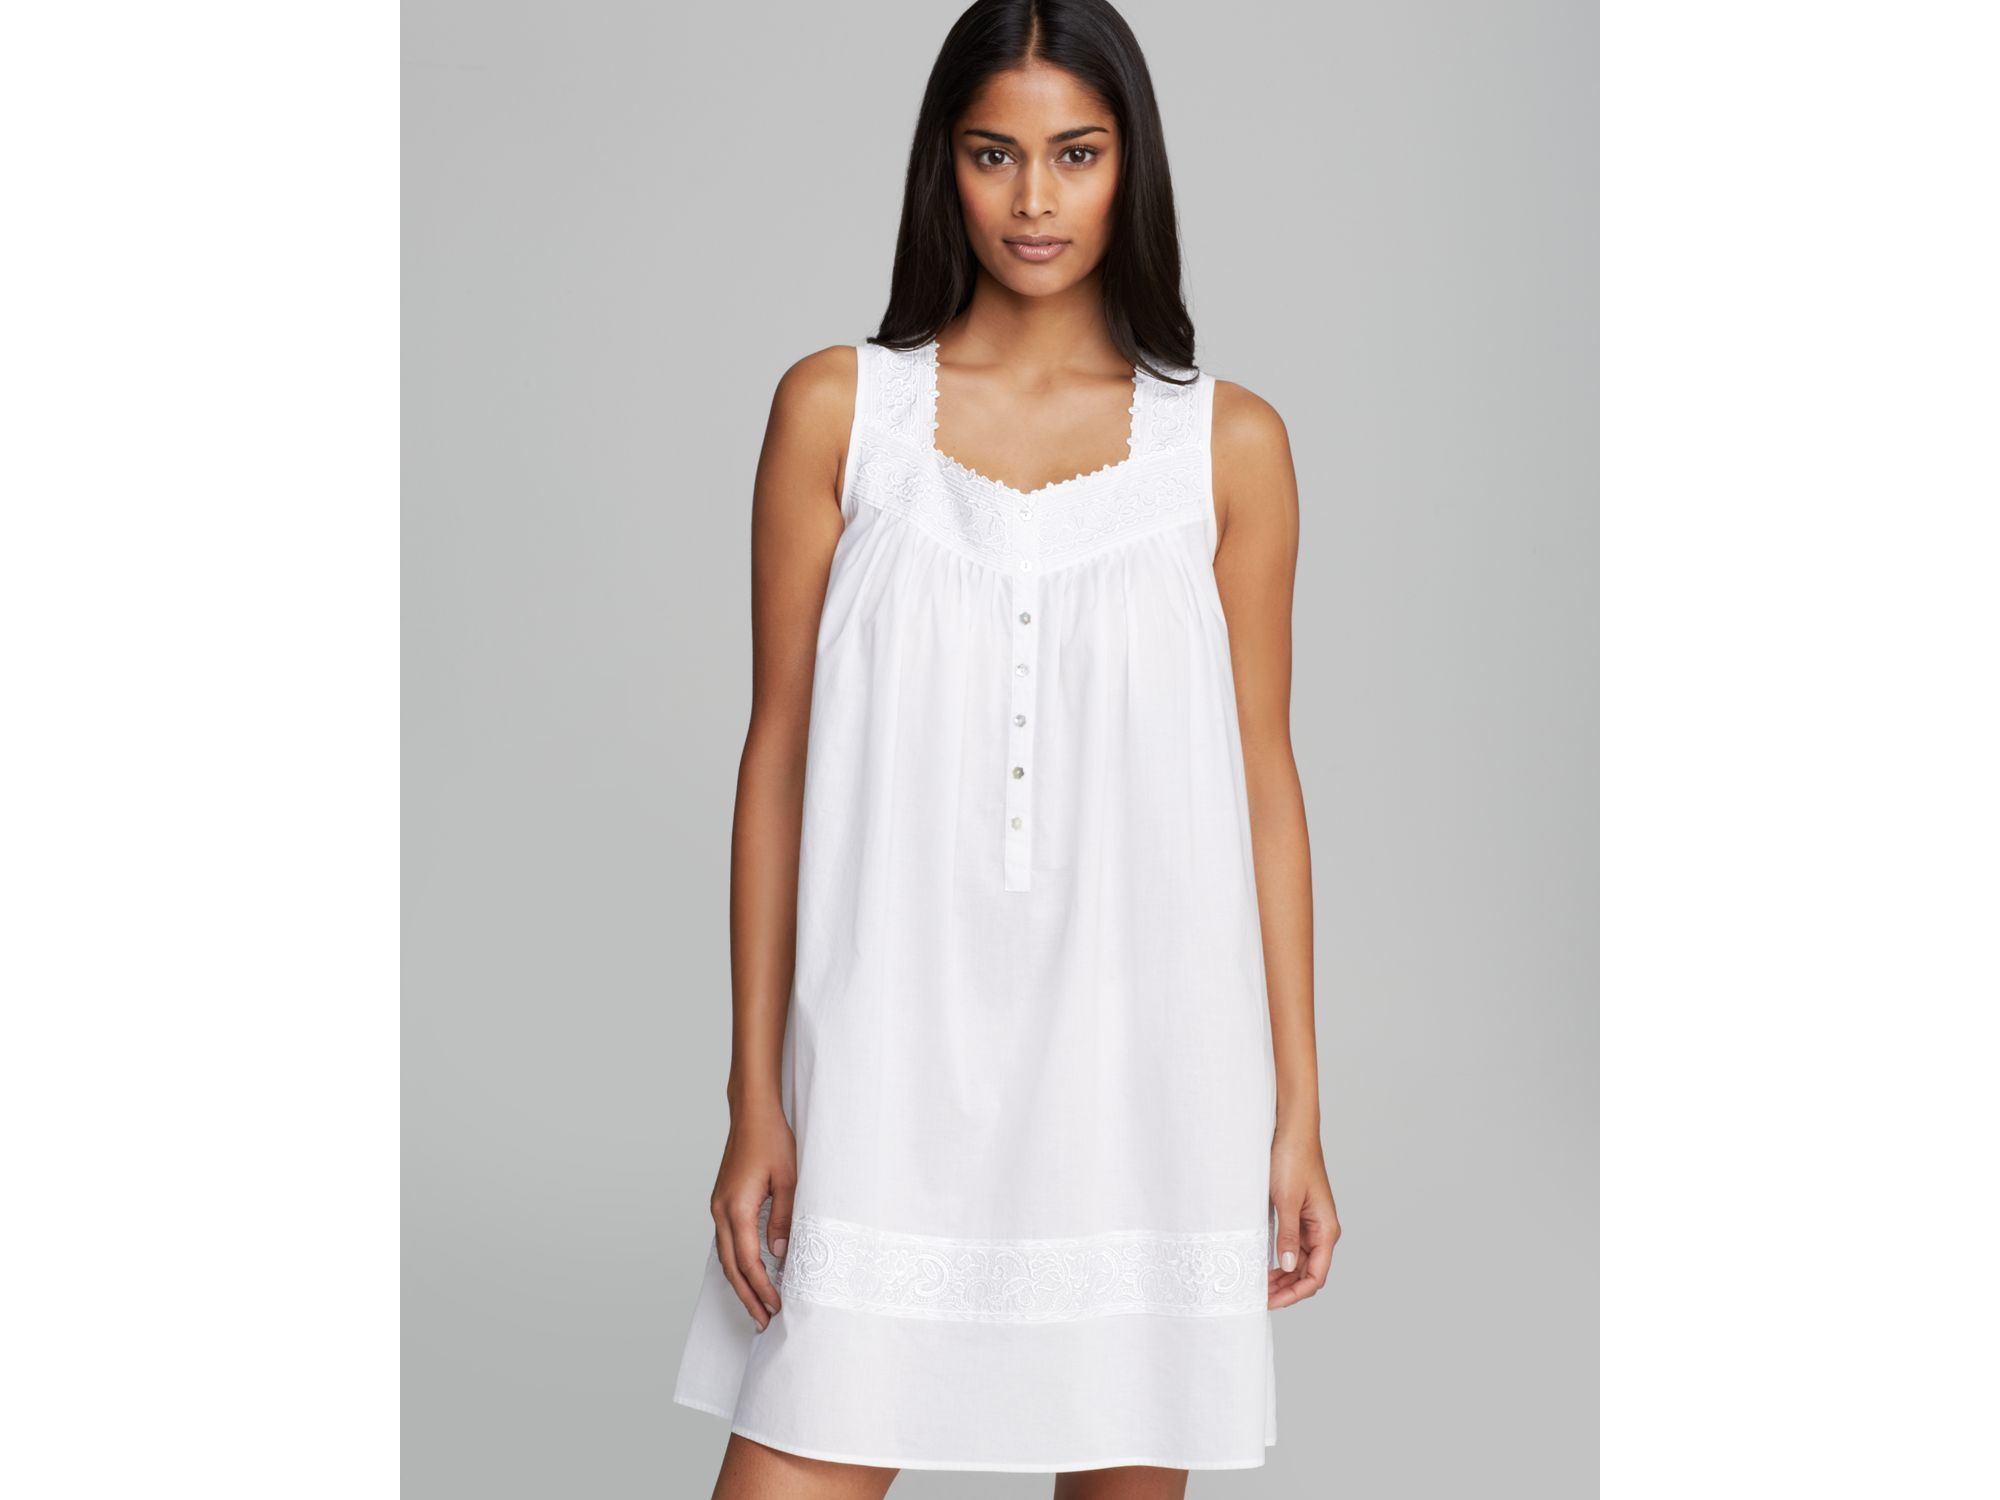 Lyst - Eileen West Short Nightgown - Bloomingdale\'s Exclusive in White